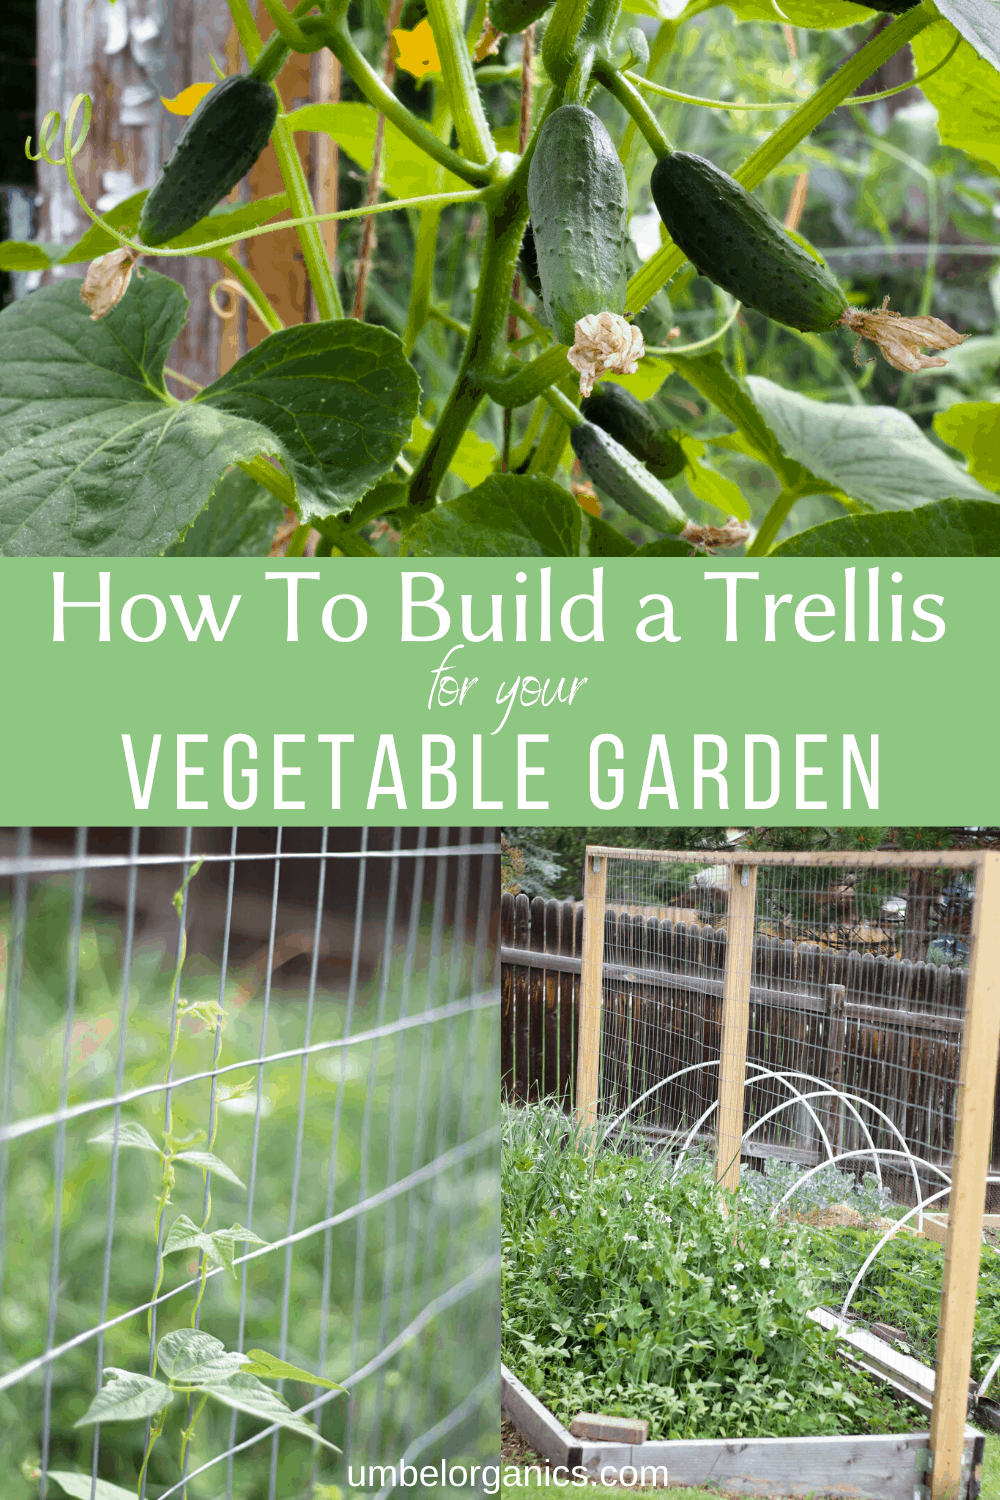 How to build a trellis for your vegetable garden with images of a trellis with cucumbers